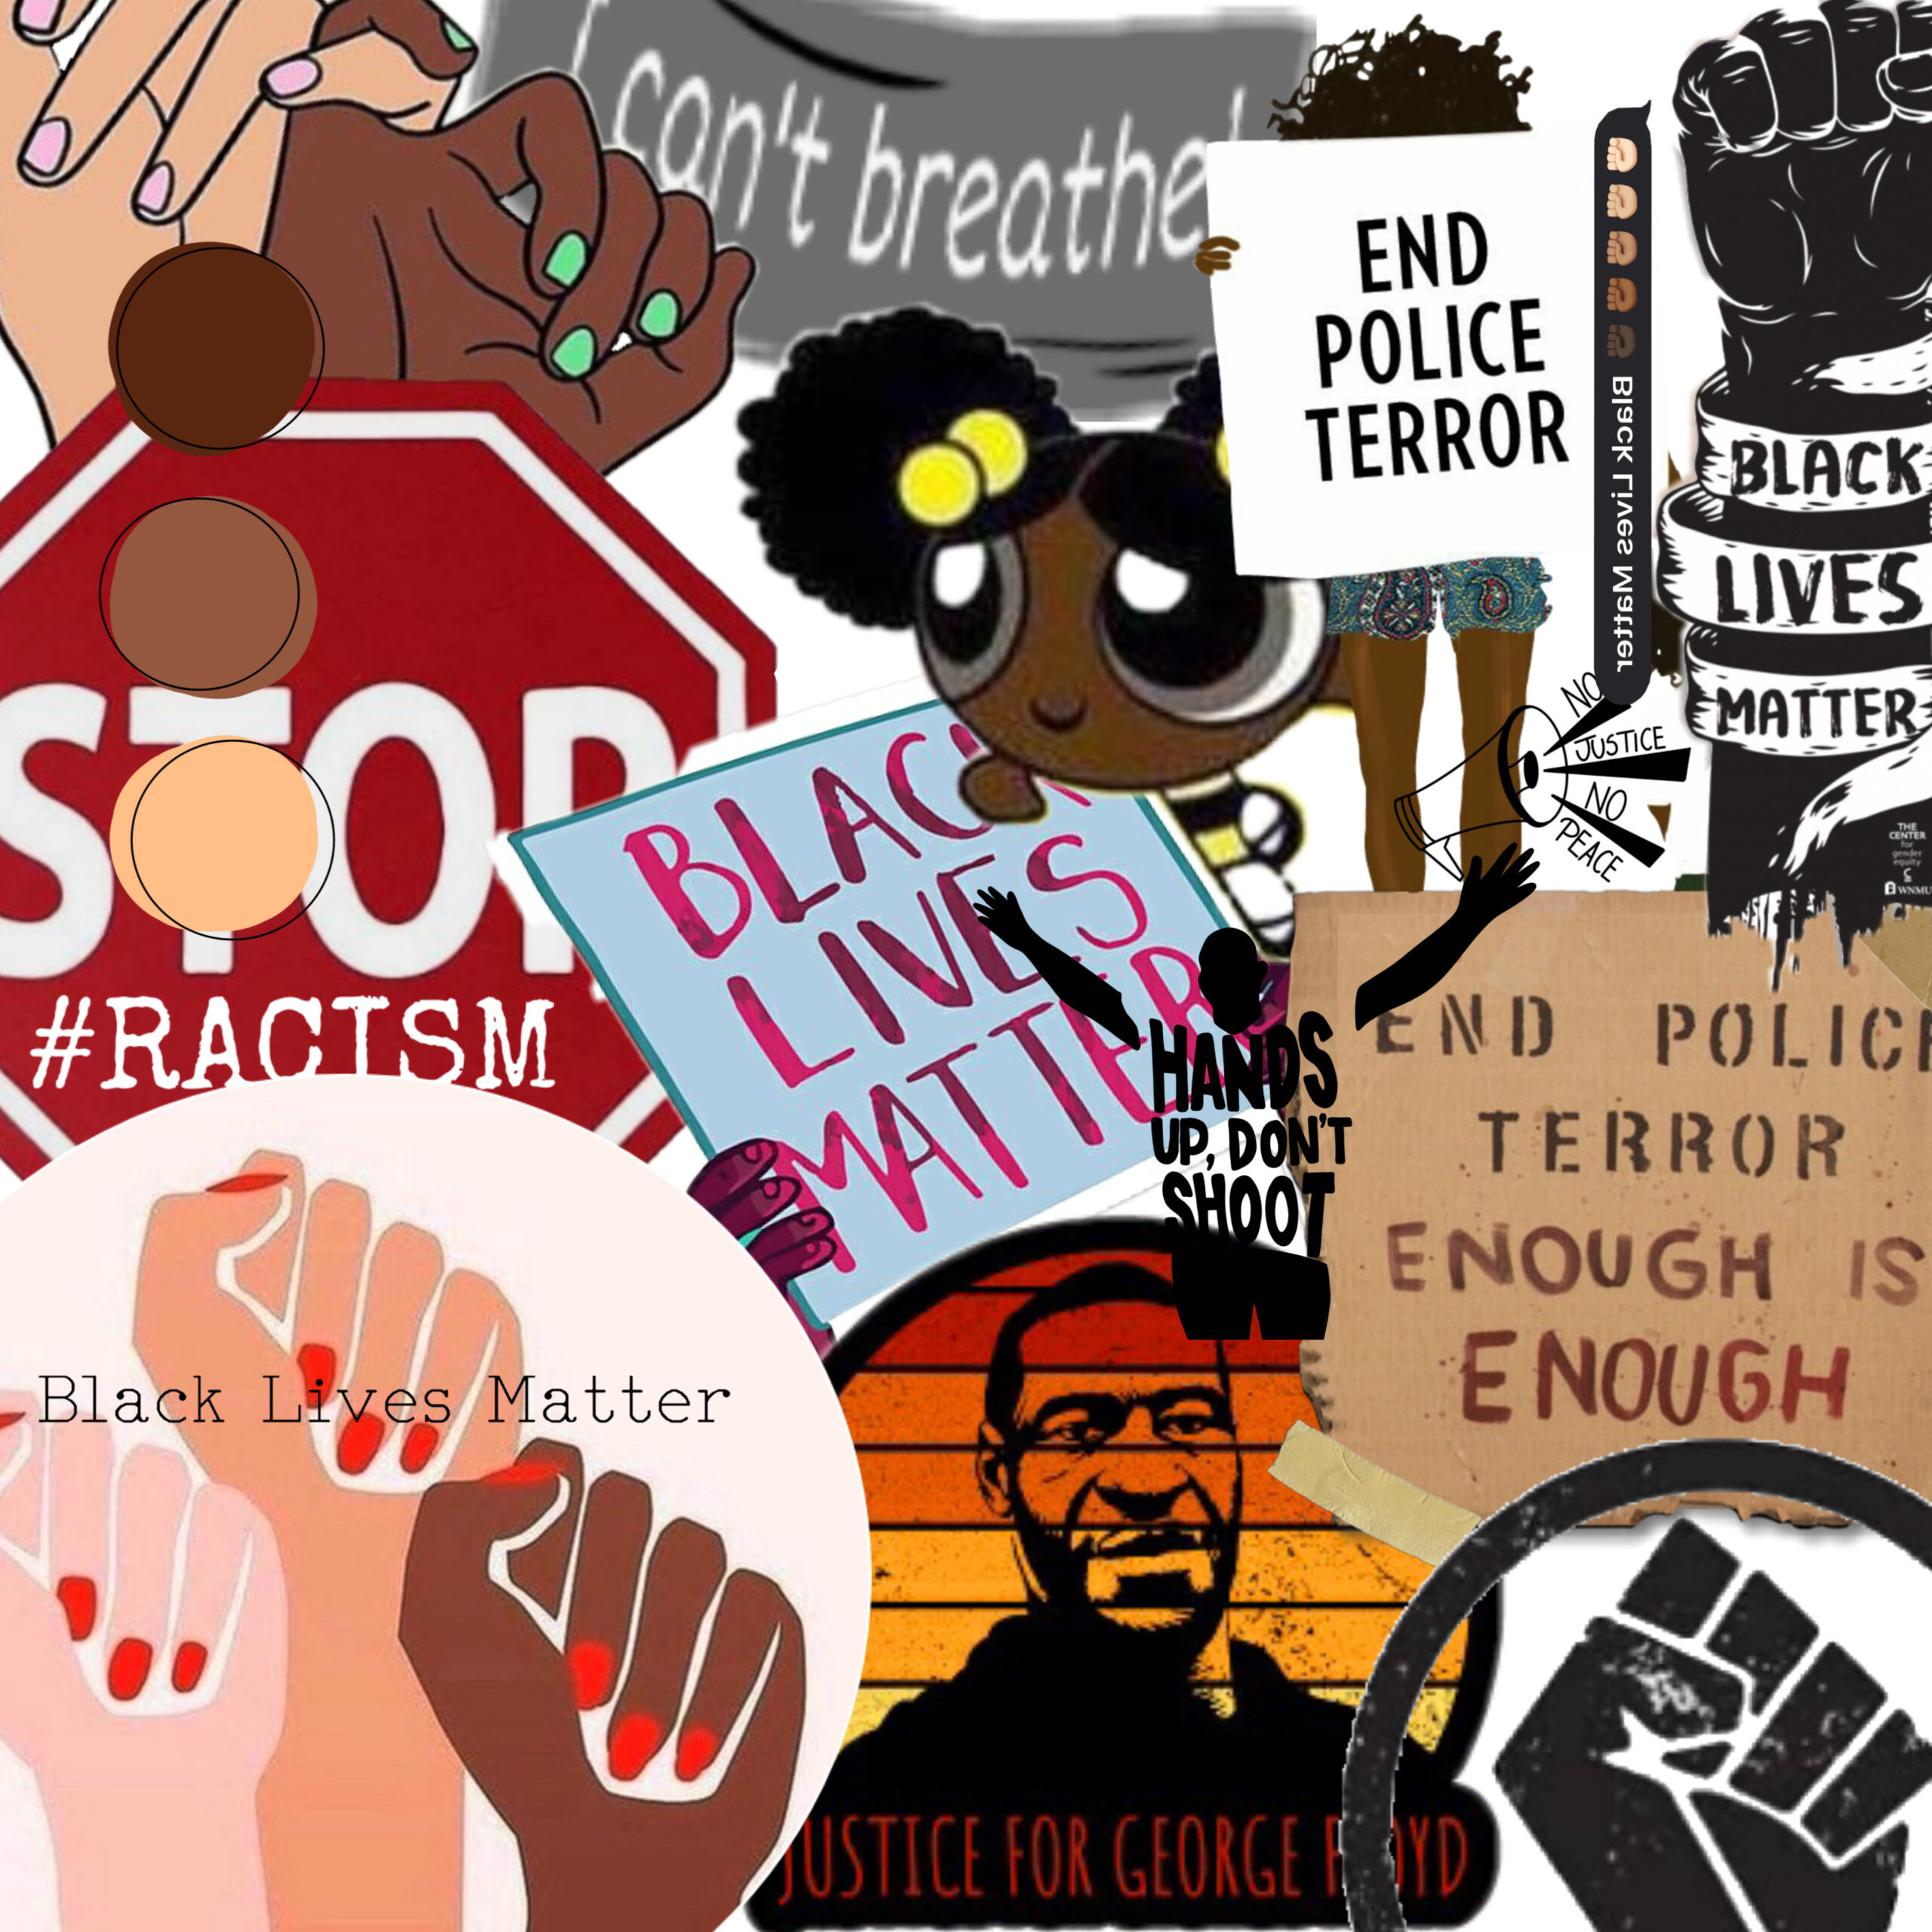 It's supposed to represent an overwhelming feeling of all the racism occurring. By making a collage of pieces that are typically not arranged and neat but still portray the message, it shows how impactful it is all together.